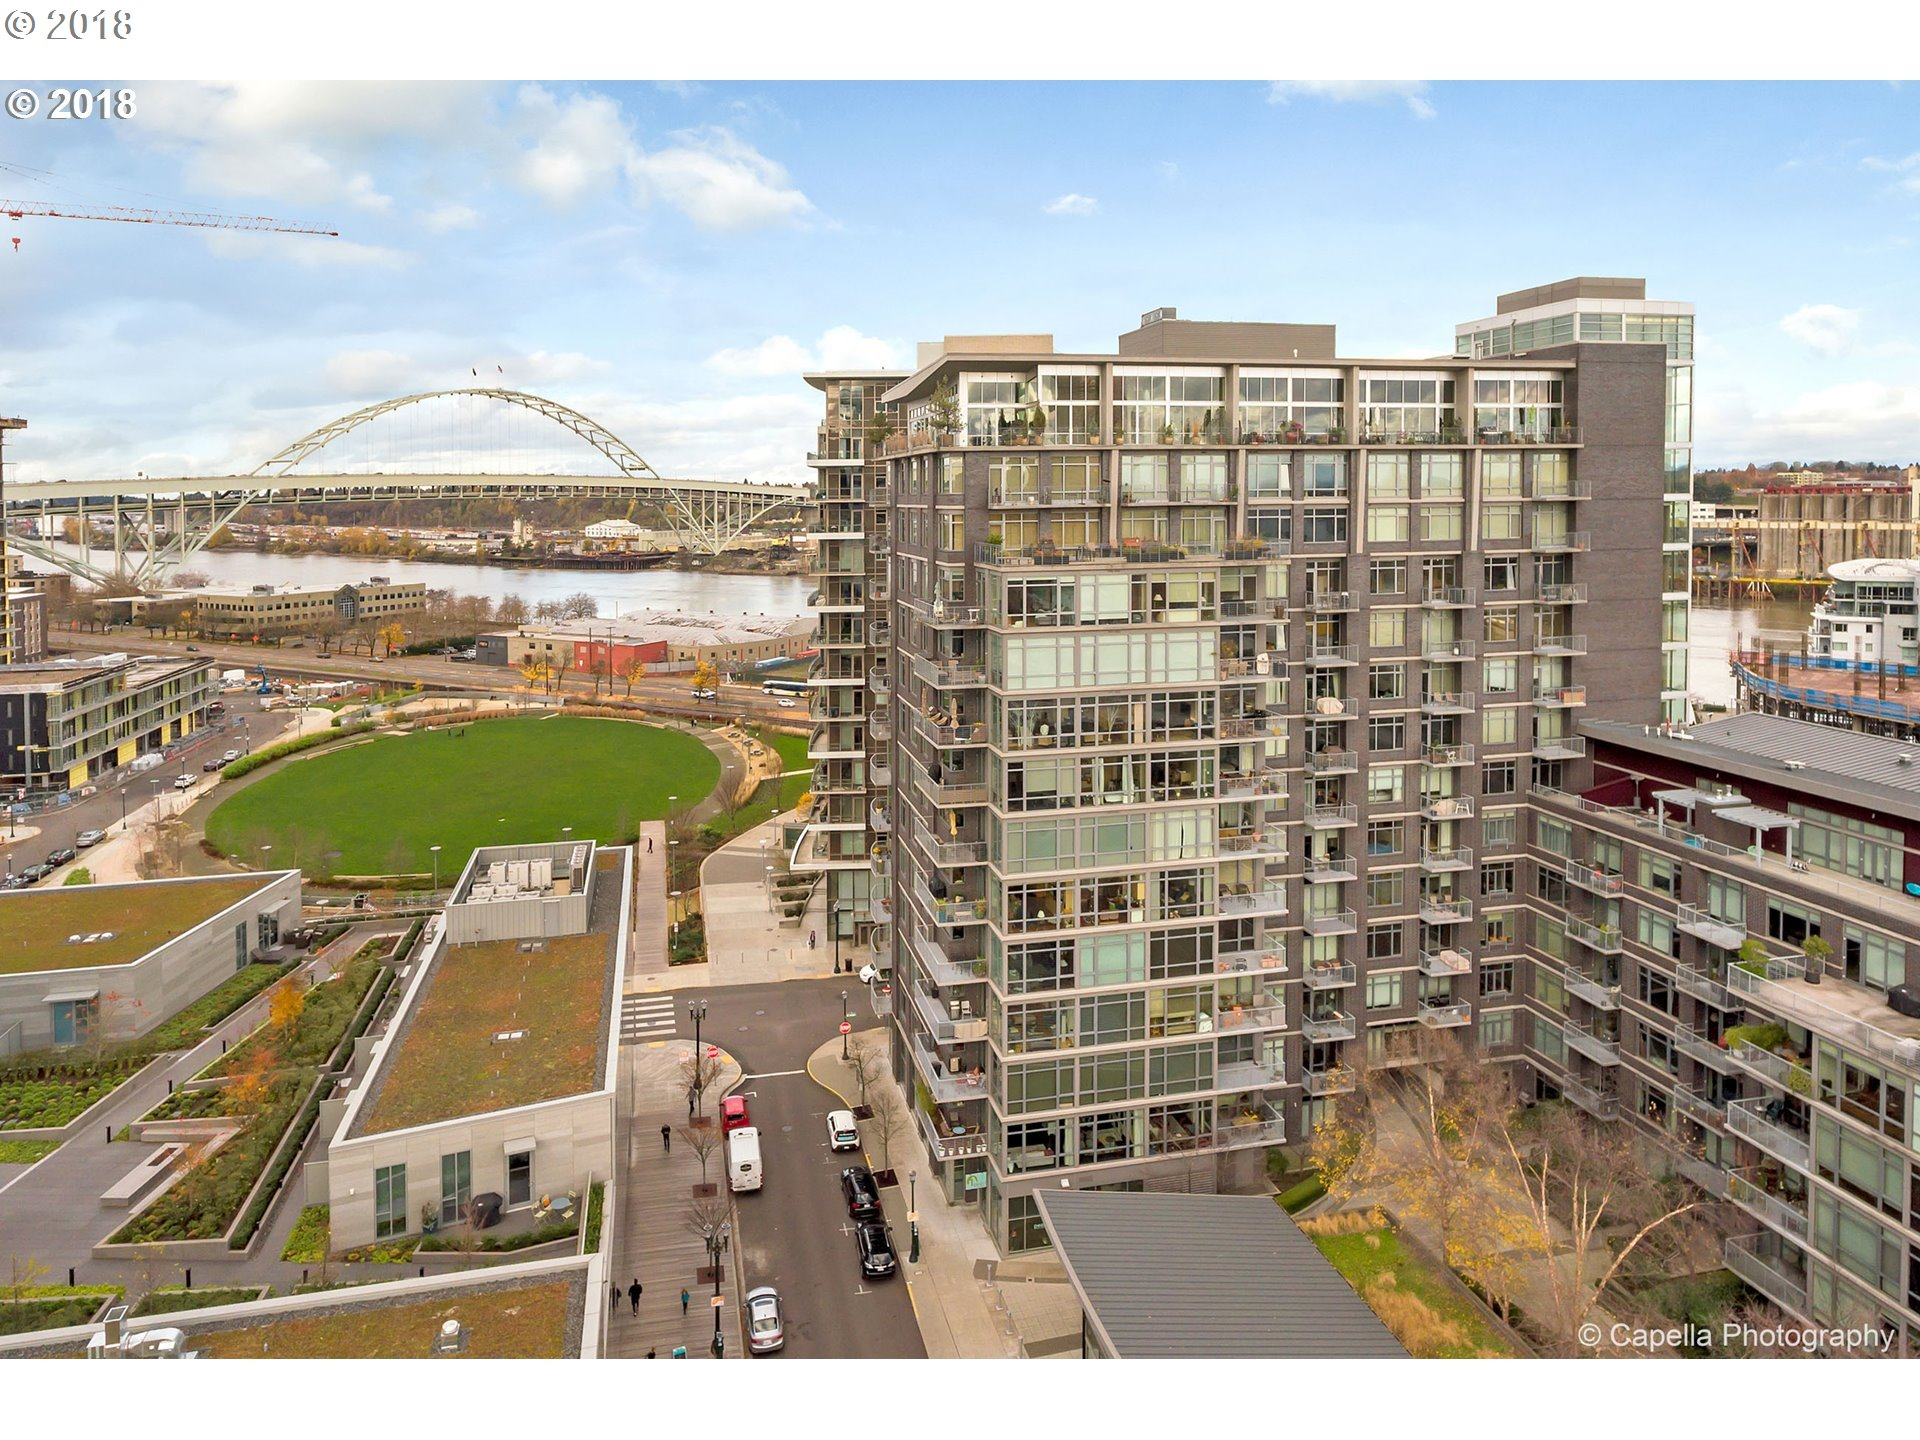 Versatile Pinnacle two story condo in a prime location that can be residential or business or both.High ceilings,great light,modern flair.adaptable floor plan and entries on both levels.Floor to ceiling windows with french doors and built ins upstairs.Sale includes one parking and one storage unit.Unit can be rental if new owner chooses as whole or in 2 parts and for as little as 7 days.